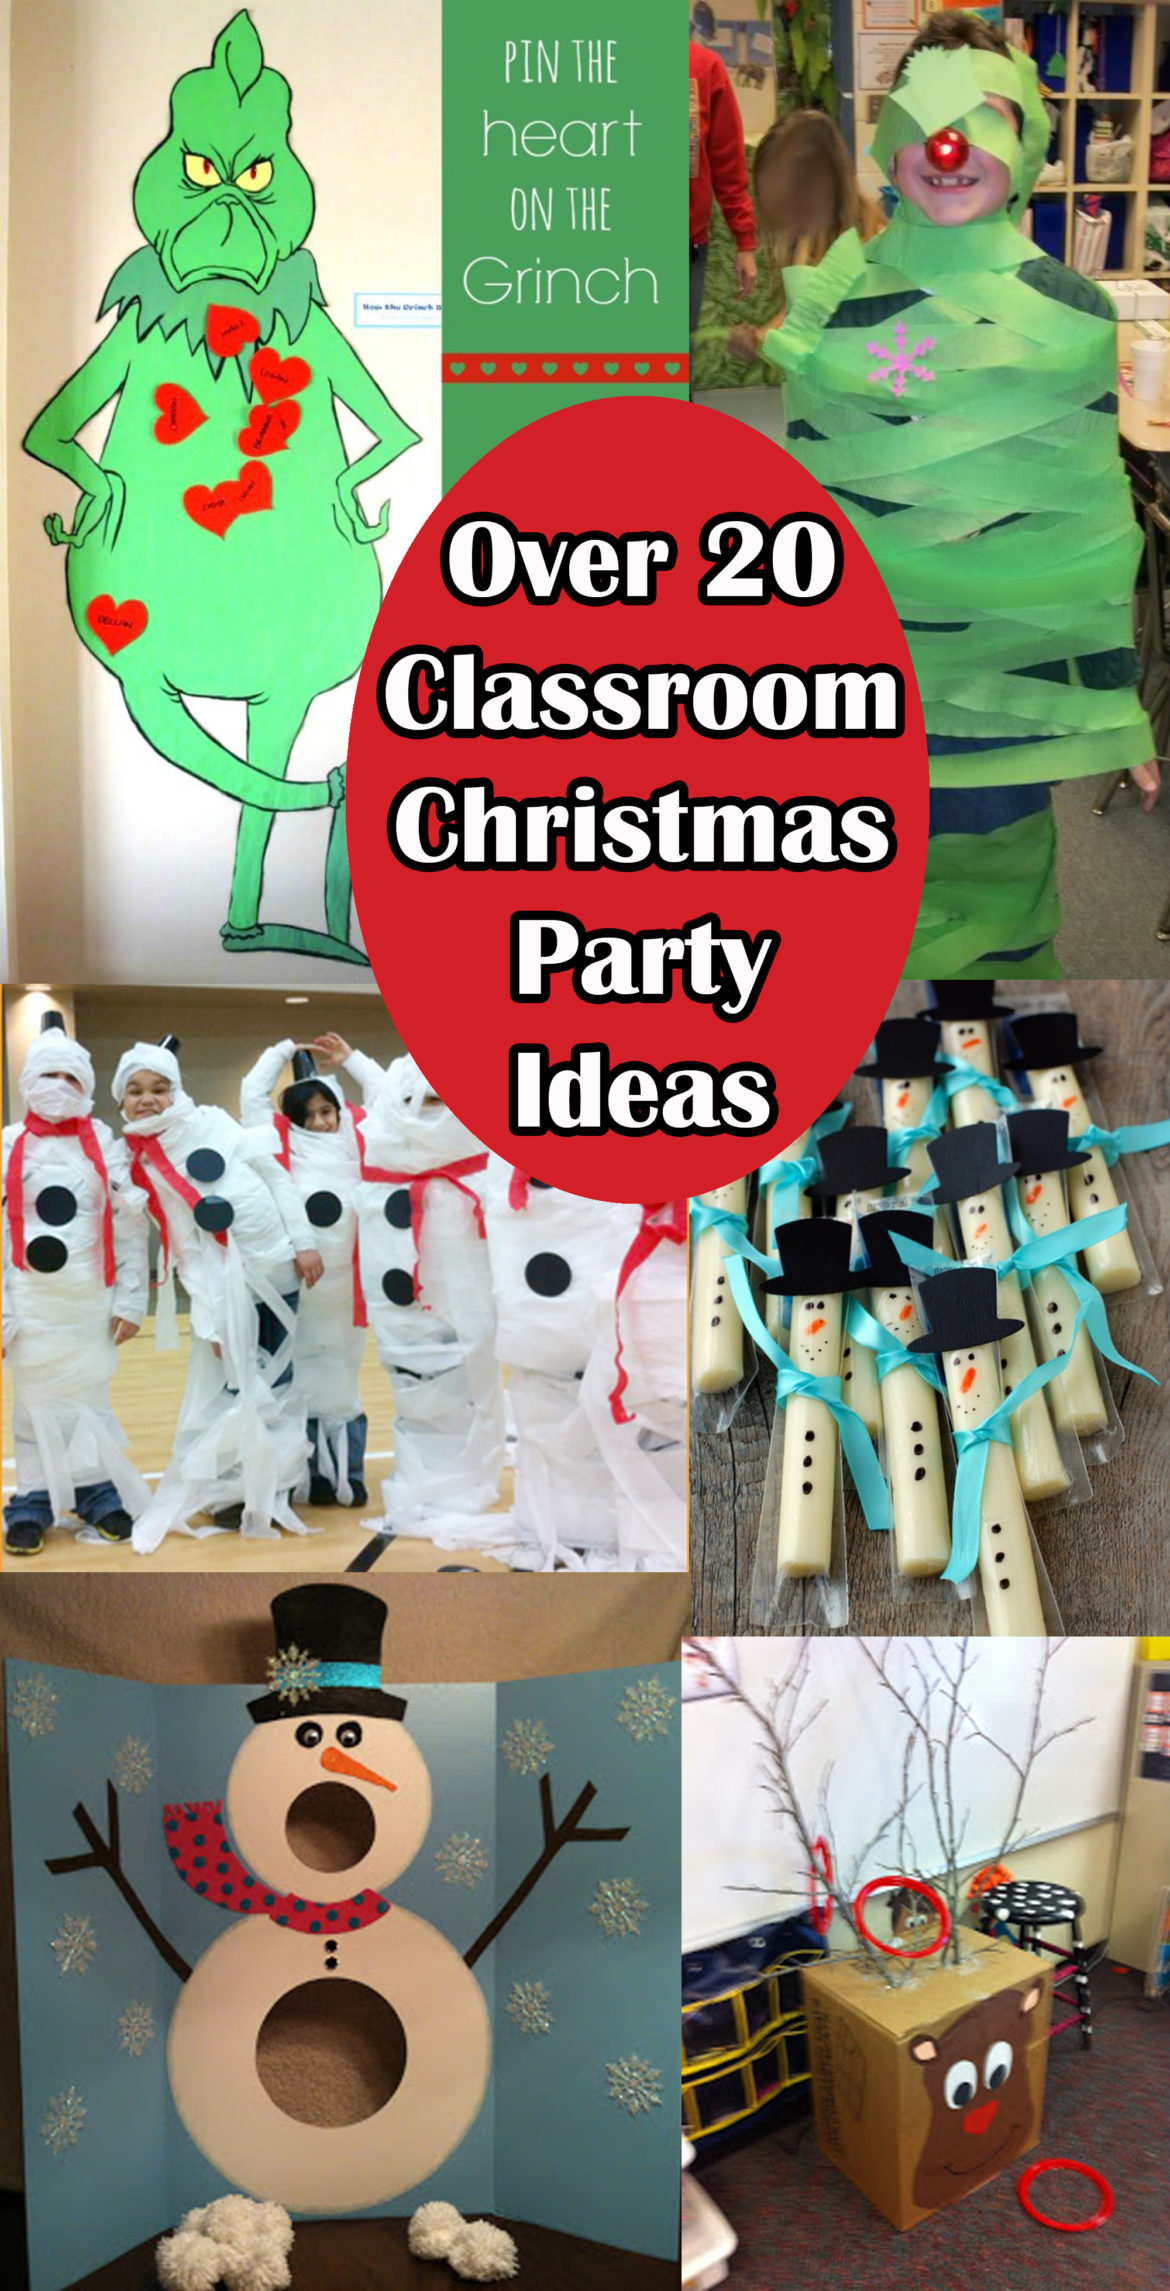 over-20-classroom-christmas-party-ideas